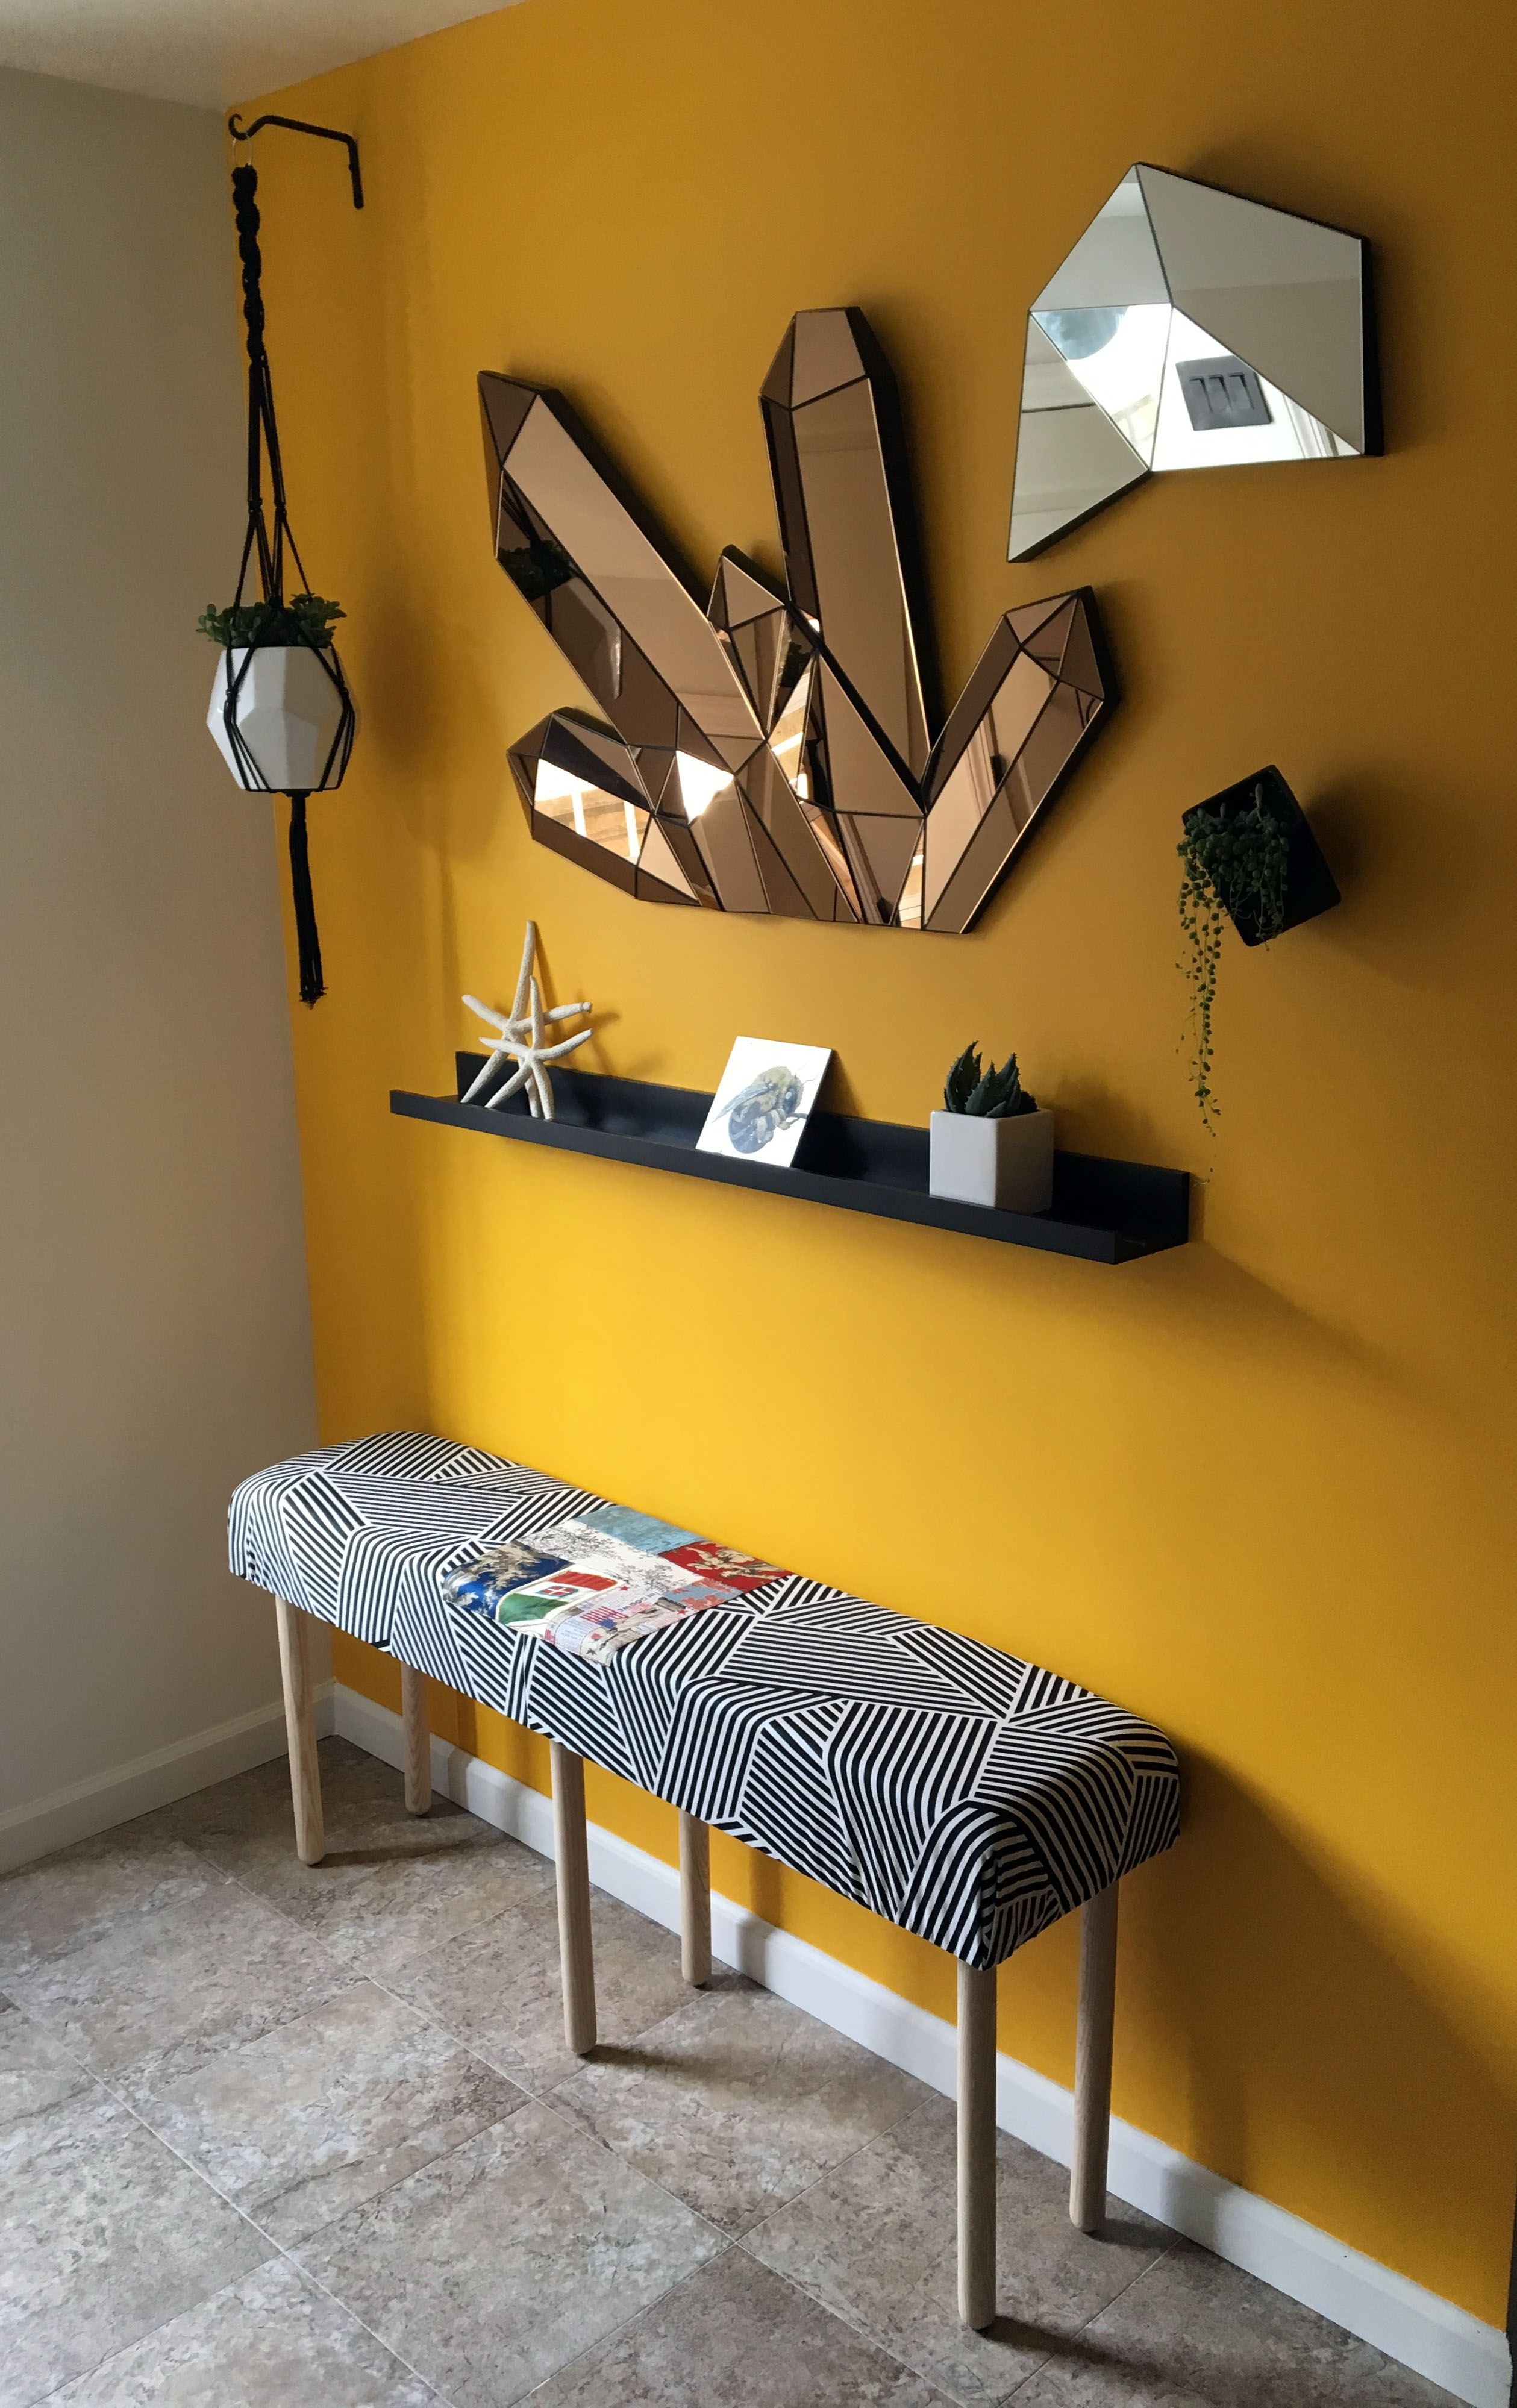 Mustard Yellow Yes Please This Entryway Wall In Sunny